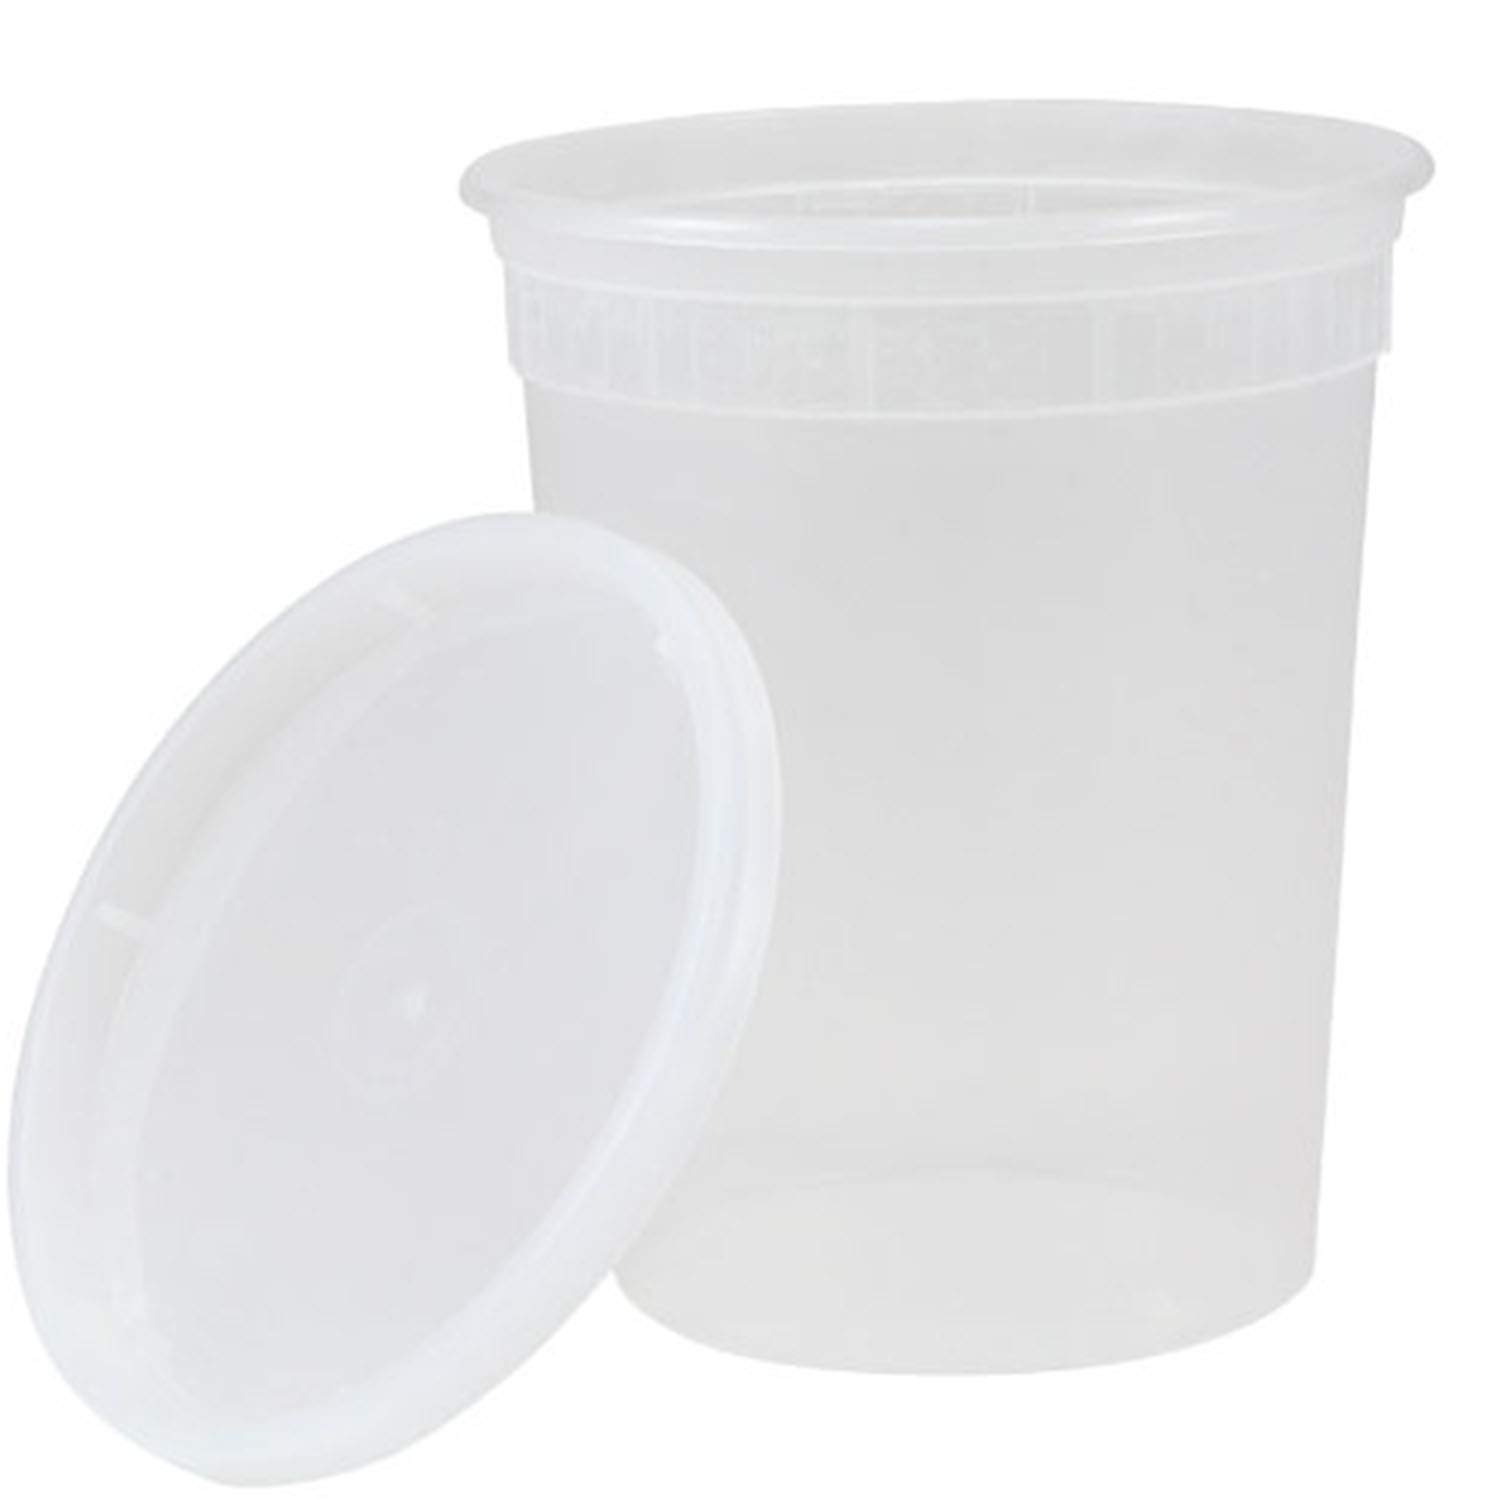 TigerChef Deli Containers with Lids Leak Proof, Microwave, Freezer and Dishwasher Safe, BPA-Free, 32 oz. Capacity (Pack of 20)